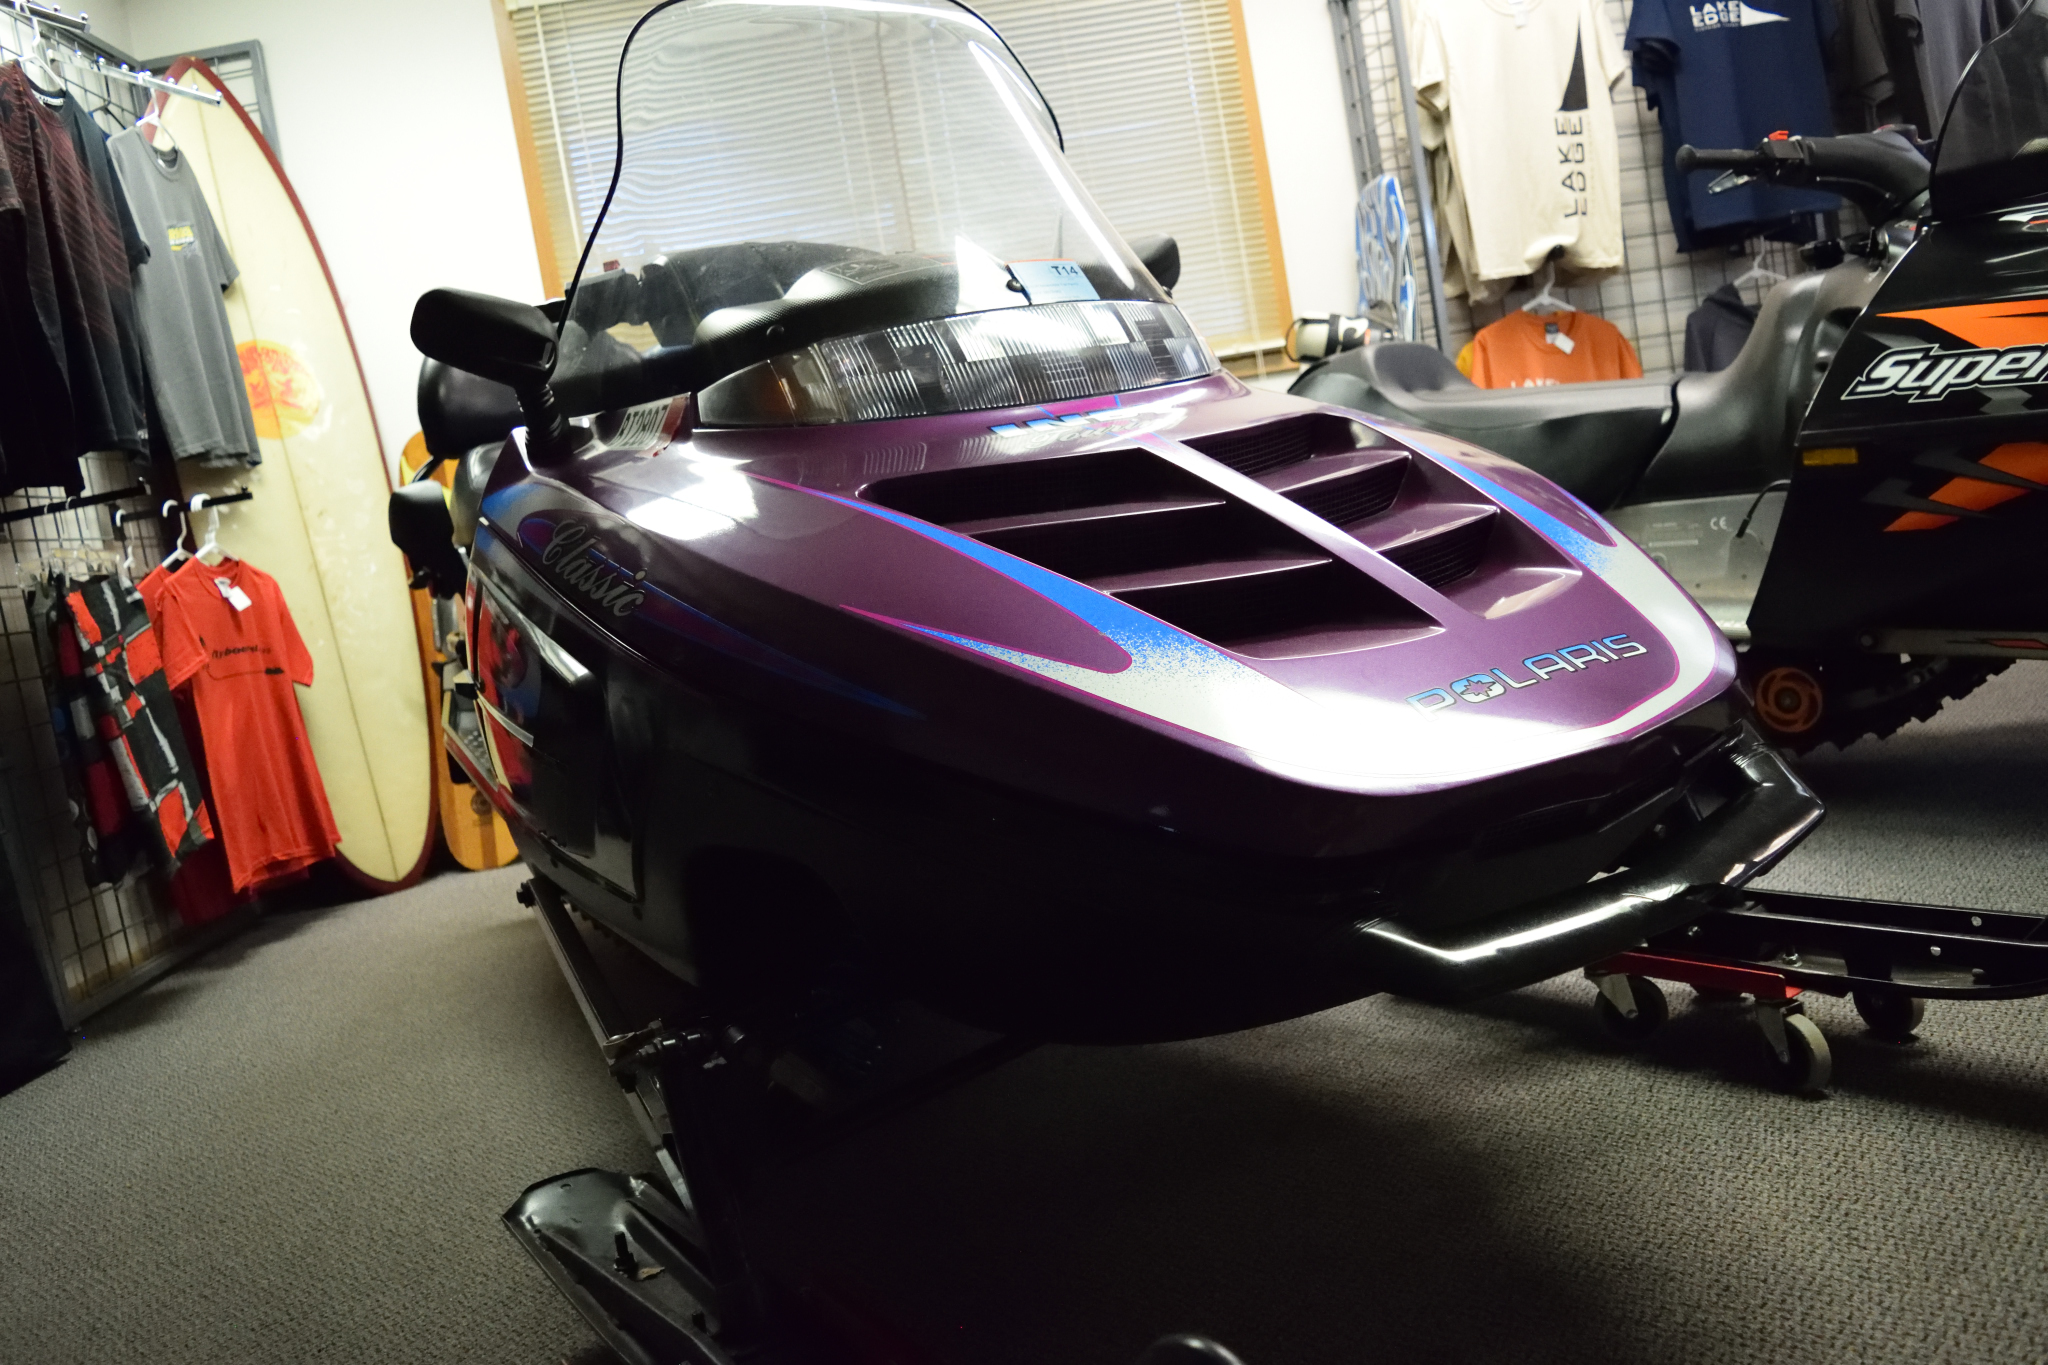 1997 Polaris Indy Classic Touring 2-up 500 Liquid Cooled Seaberg Motorsports Crosslake MN QUarter View